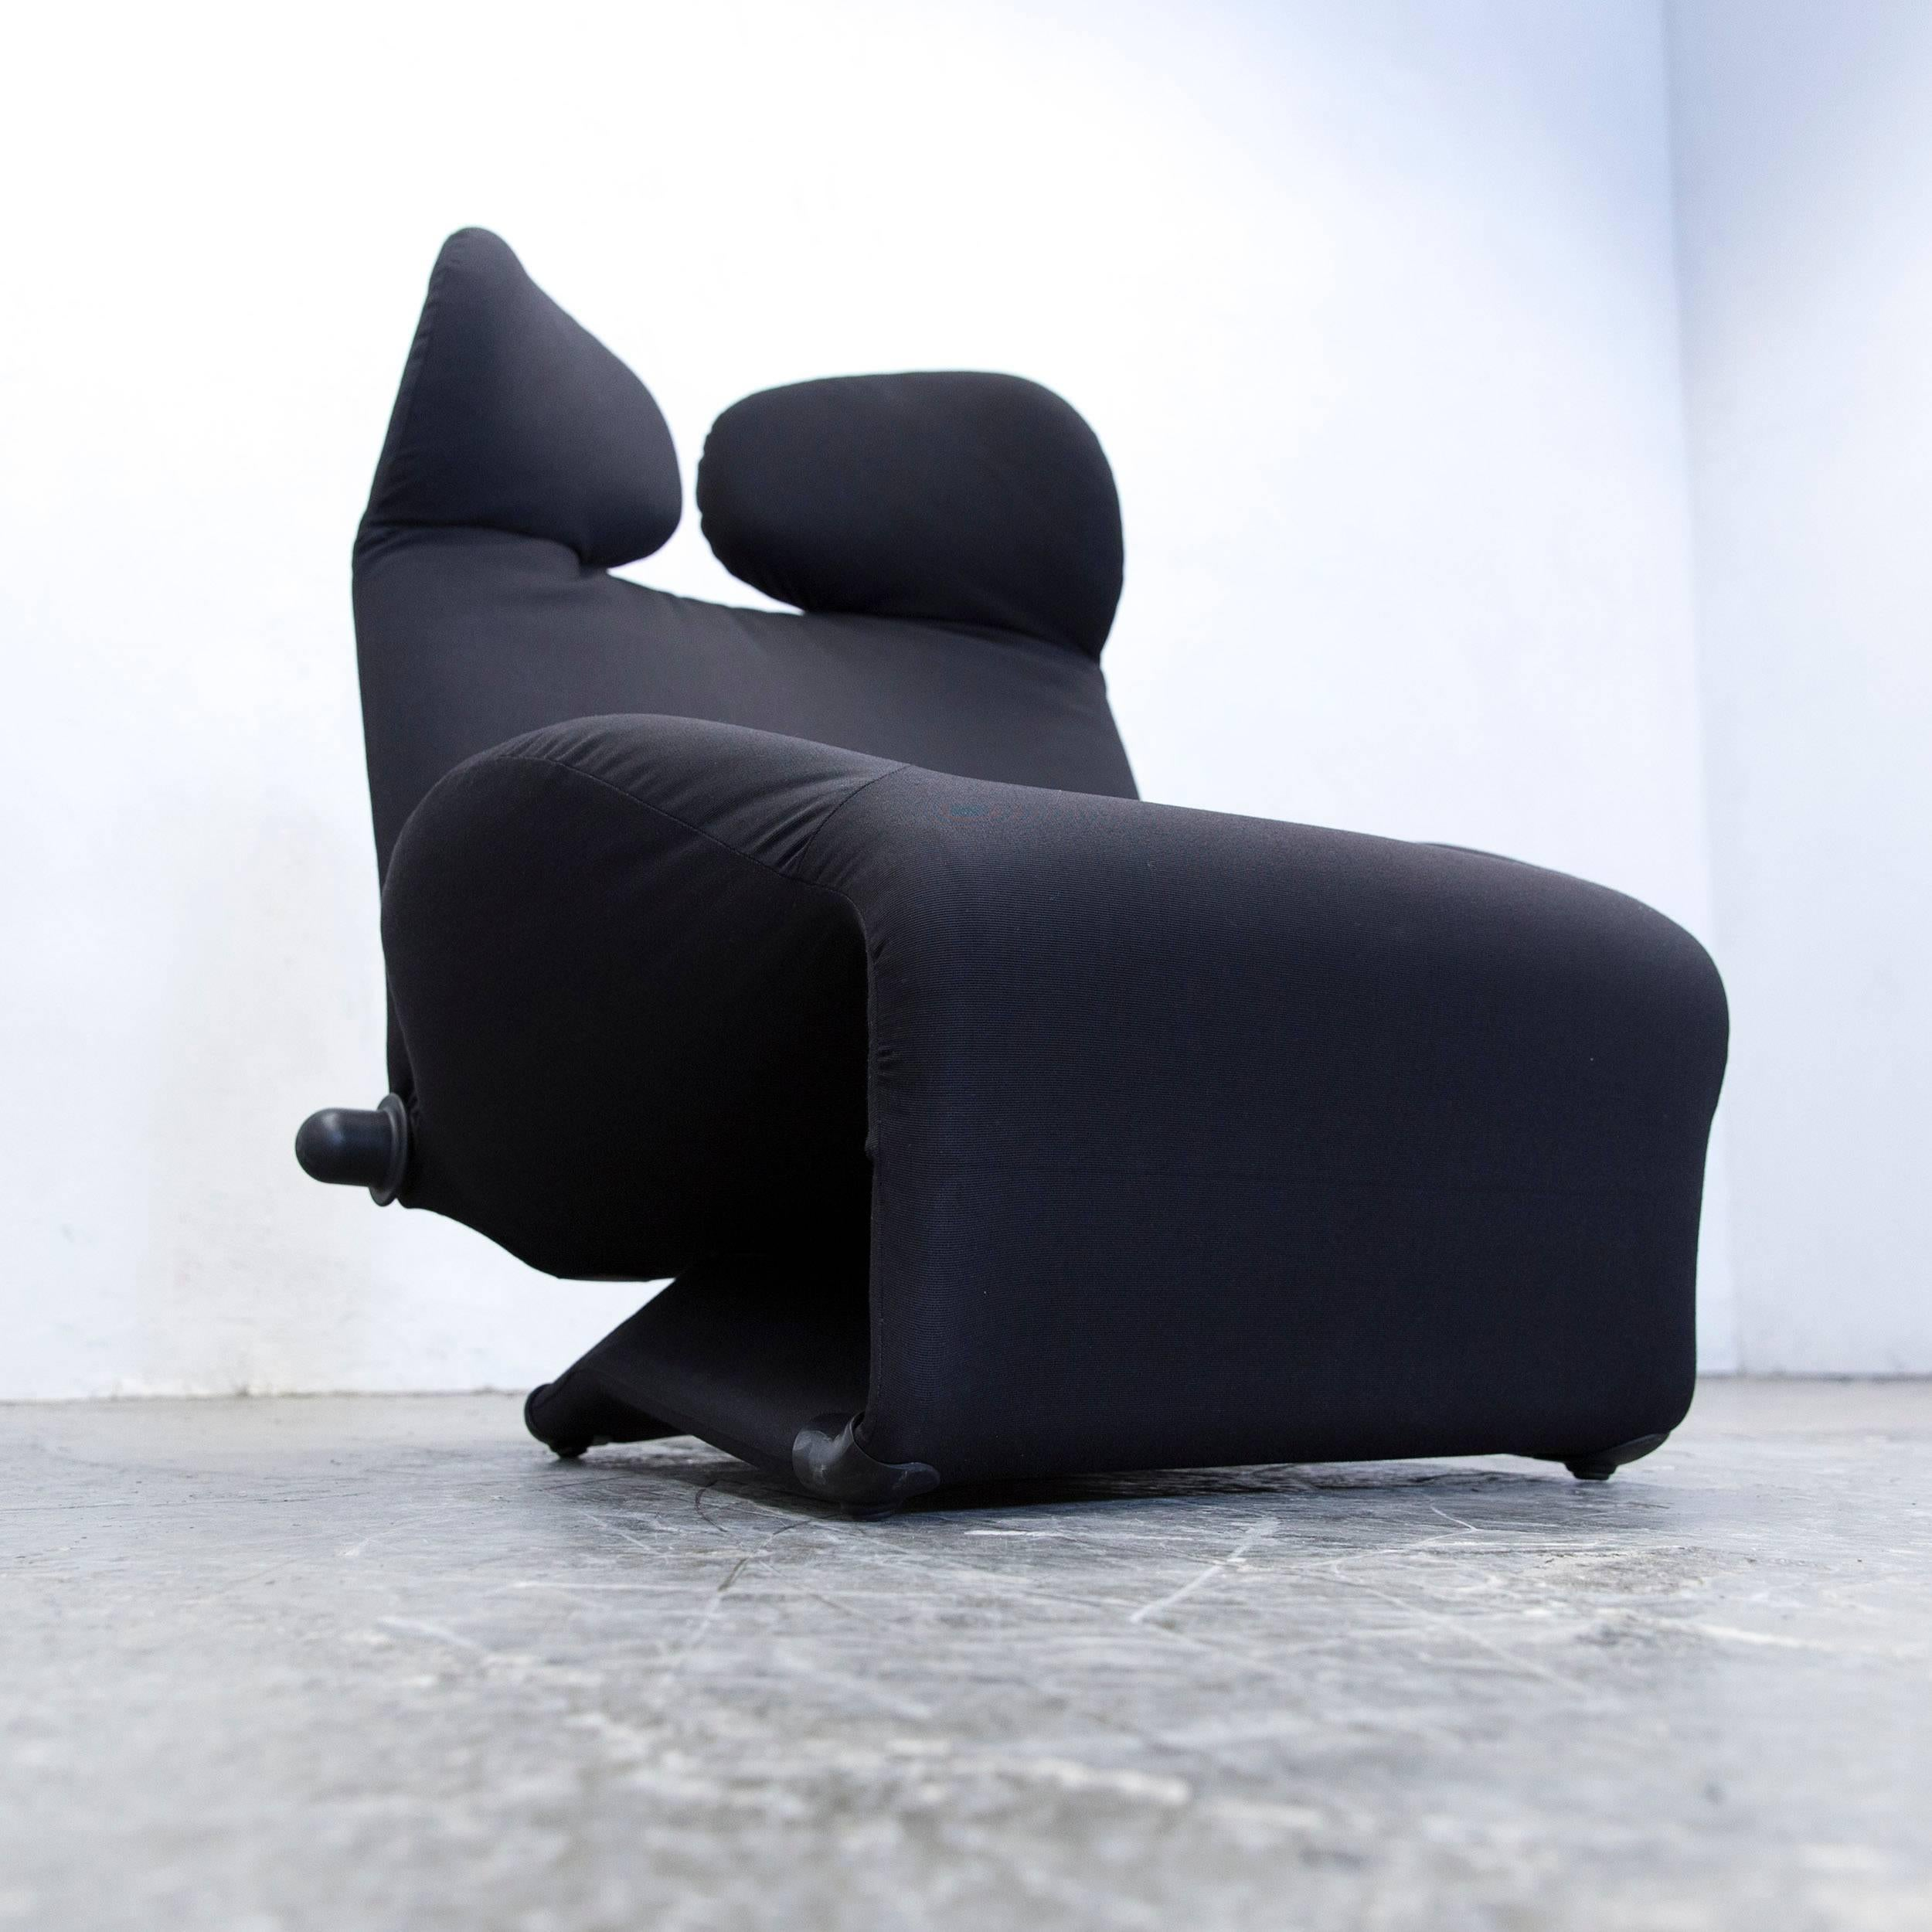 Wink Sessel Schwarz Cassina Wink Designer Armchair Fabric Black One Seat Couch